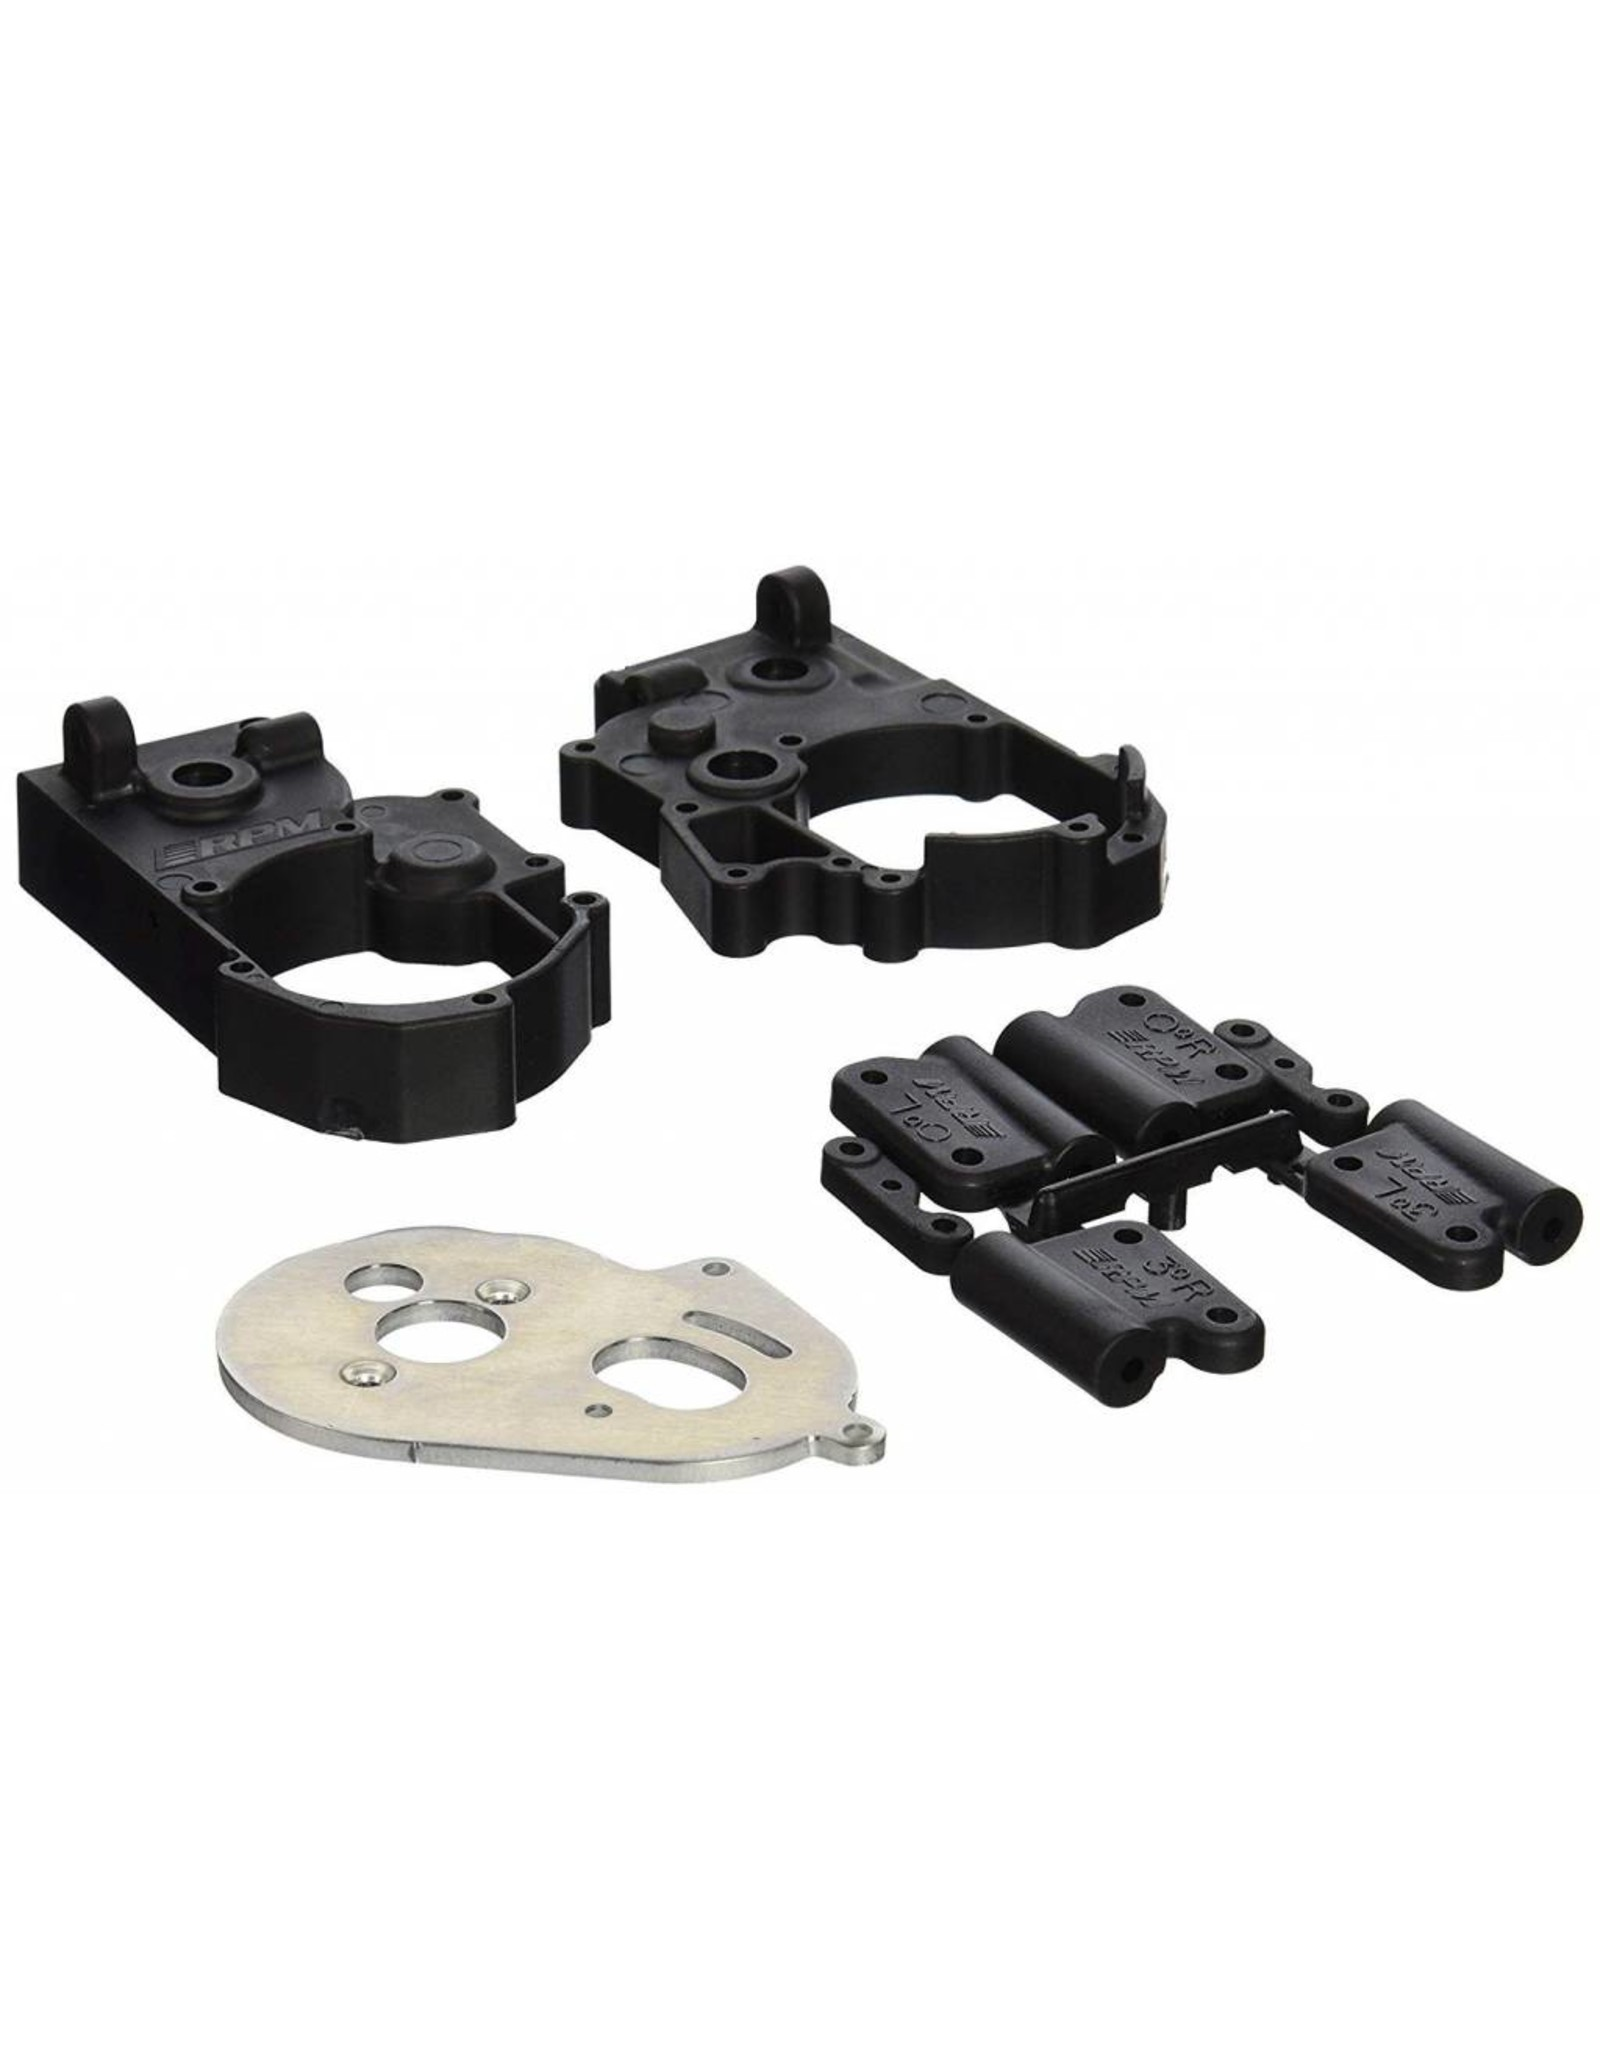 RPM Gearbox Housing and Rear Mounts, Black: TRA 2WD Vehicles (RPM73612)